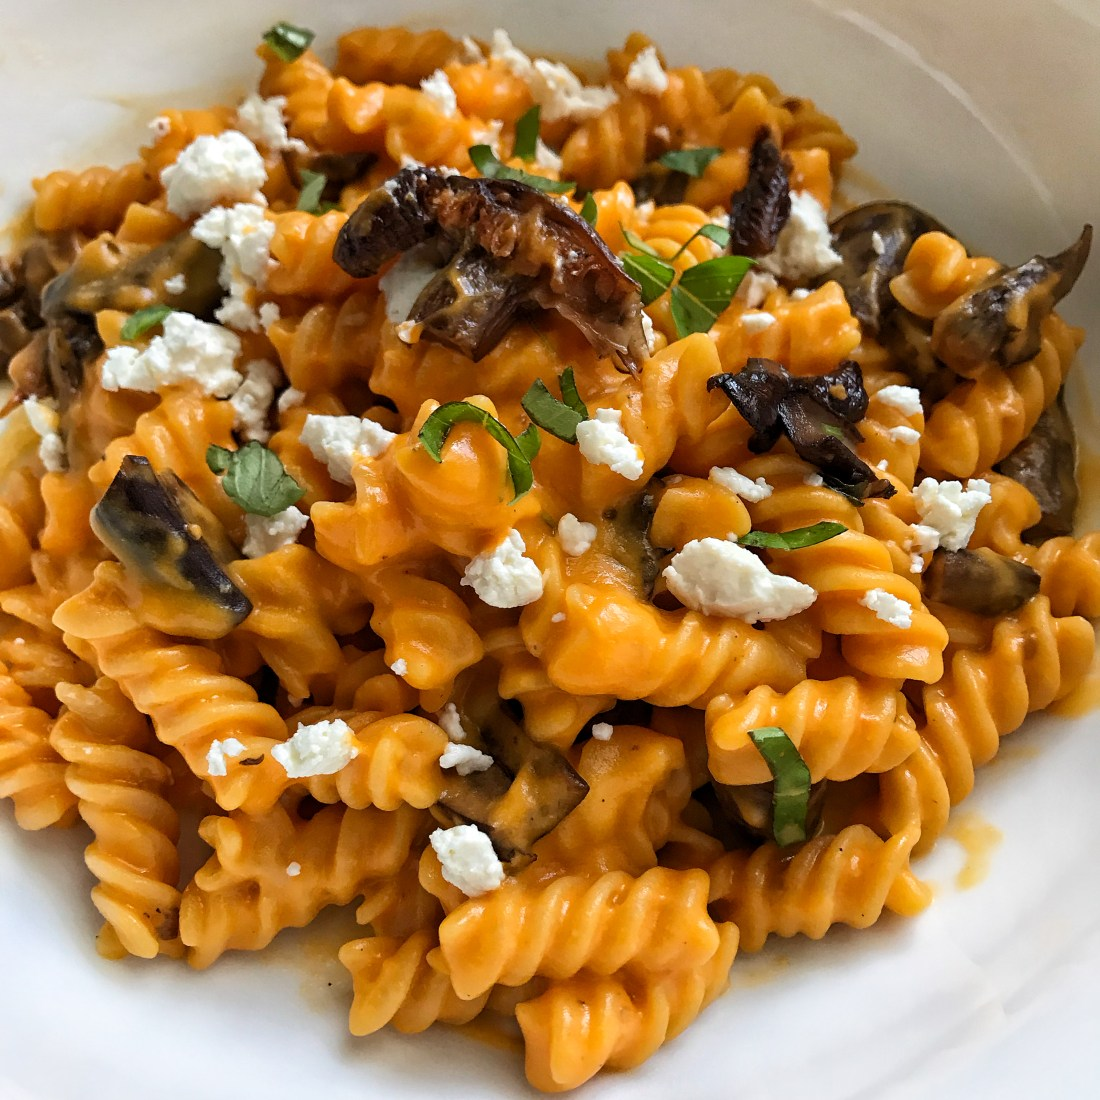 Balsamic Mushroom Pasta Sweet Potato Tomato Sauce